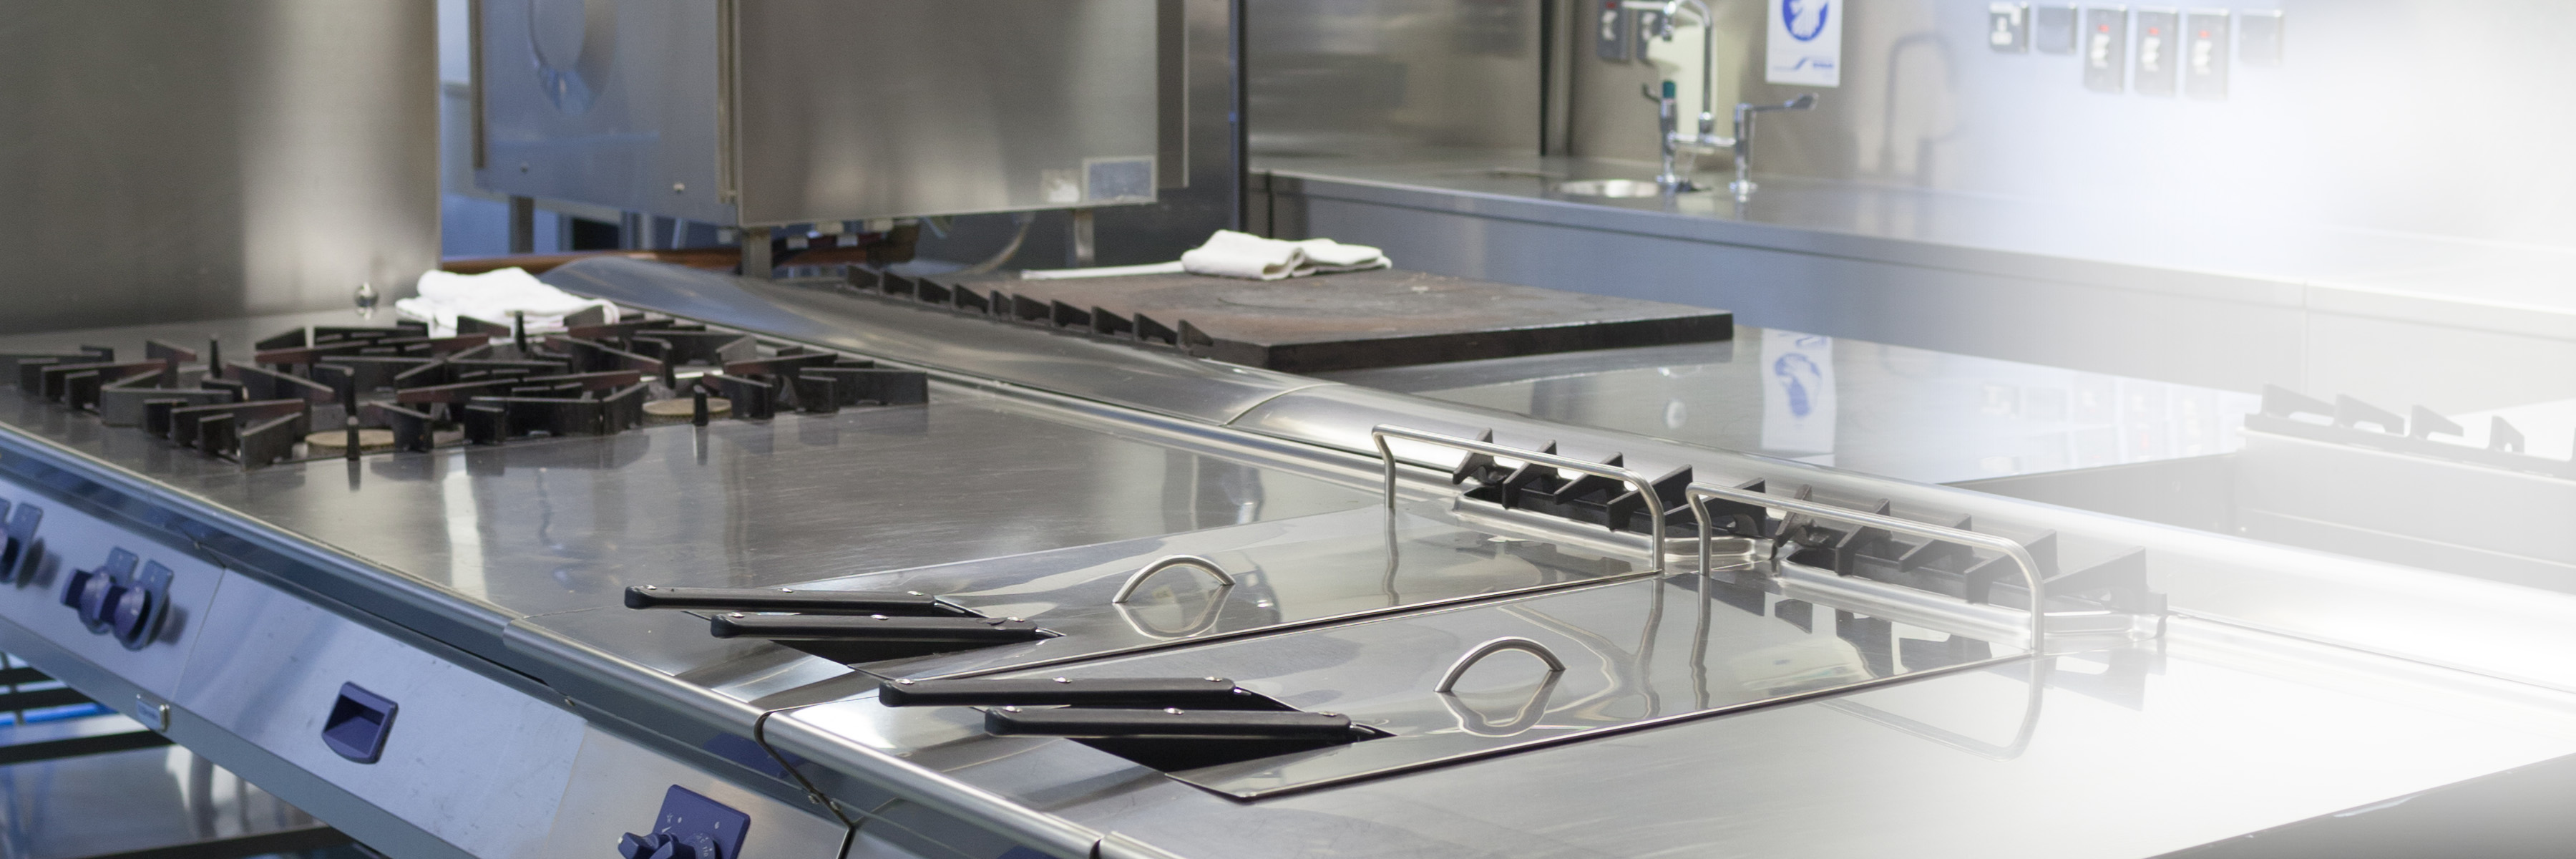 Clad Metal Products produced by roll bonding technology at AMETEK Specialty Metals Eighty Four for cookware industry.